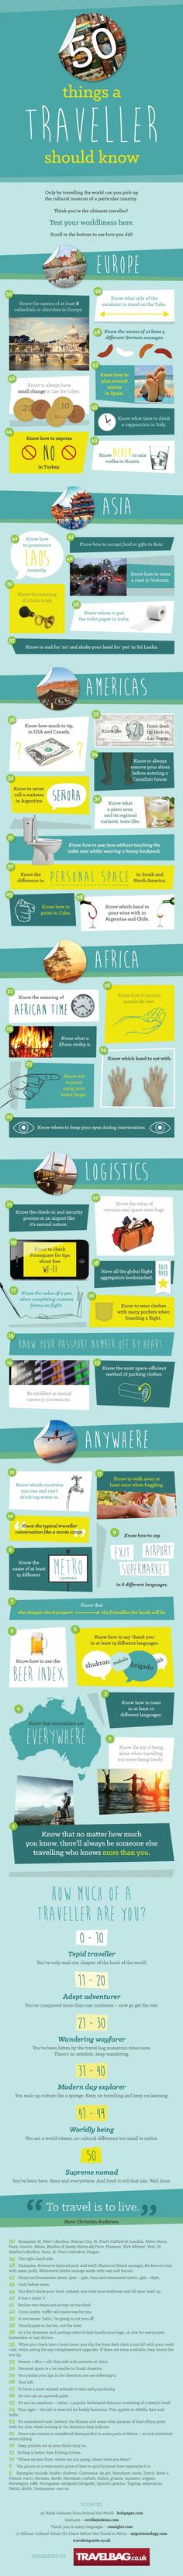 50 Things a Traveller Should Know. Love this! #travel #TravelGuide #infographic